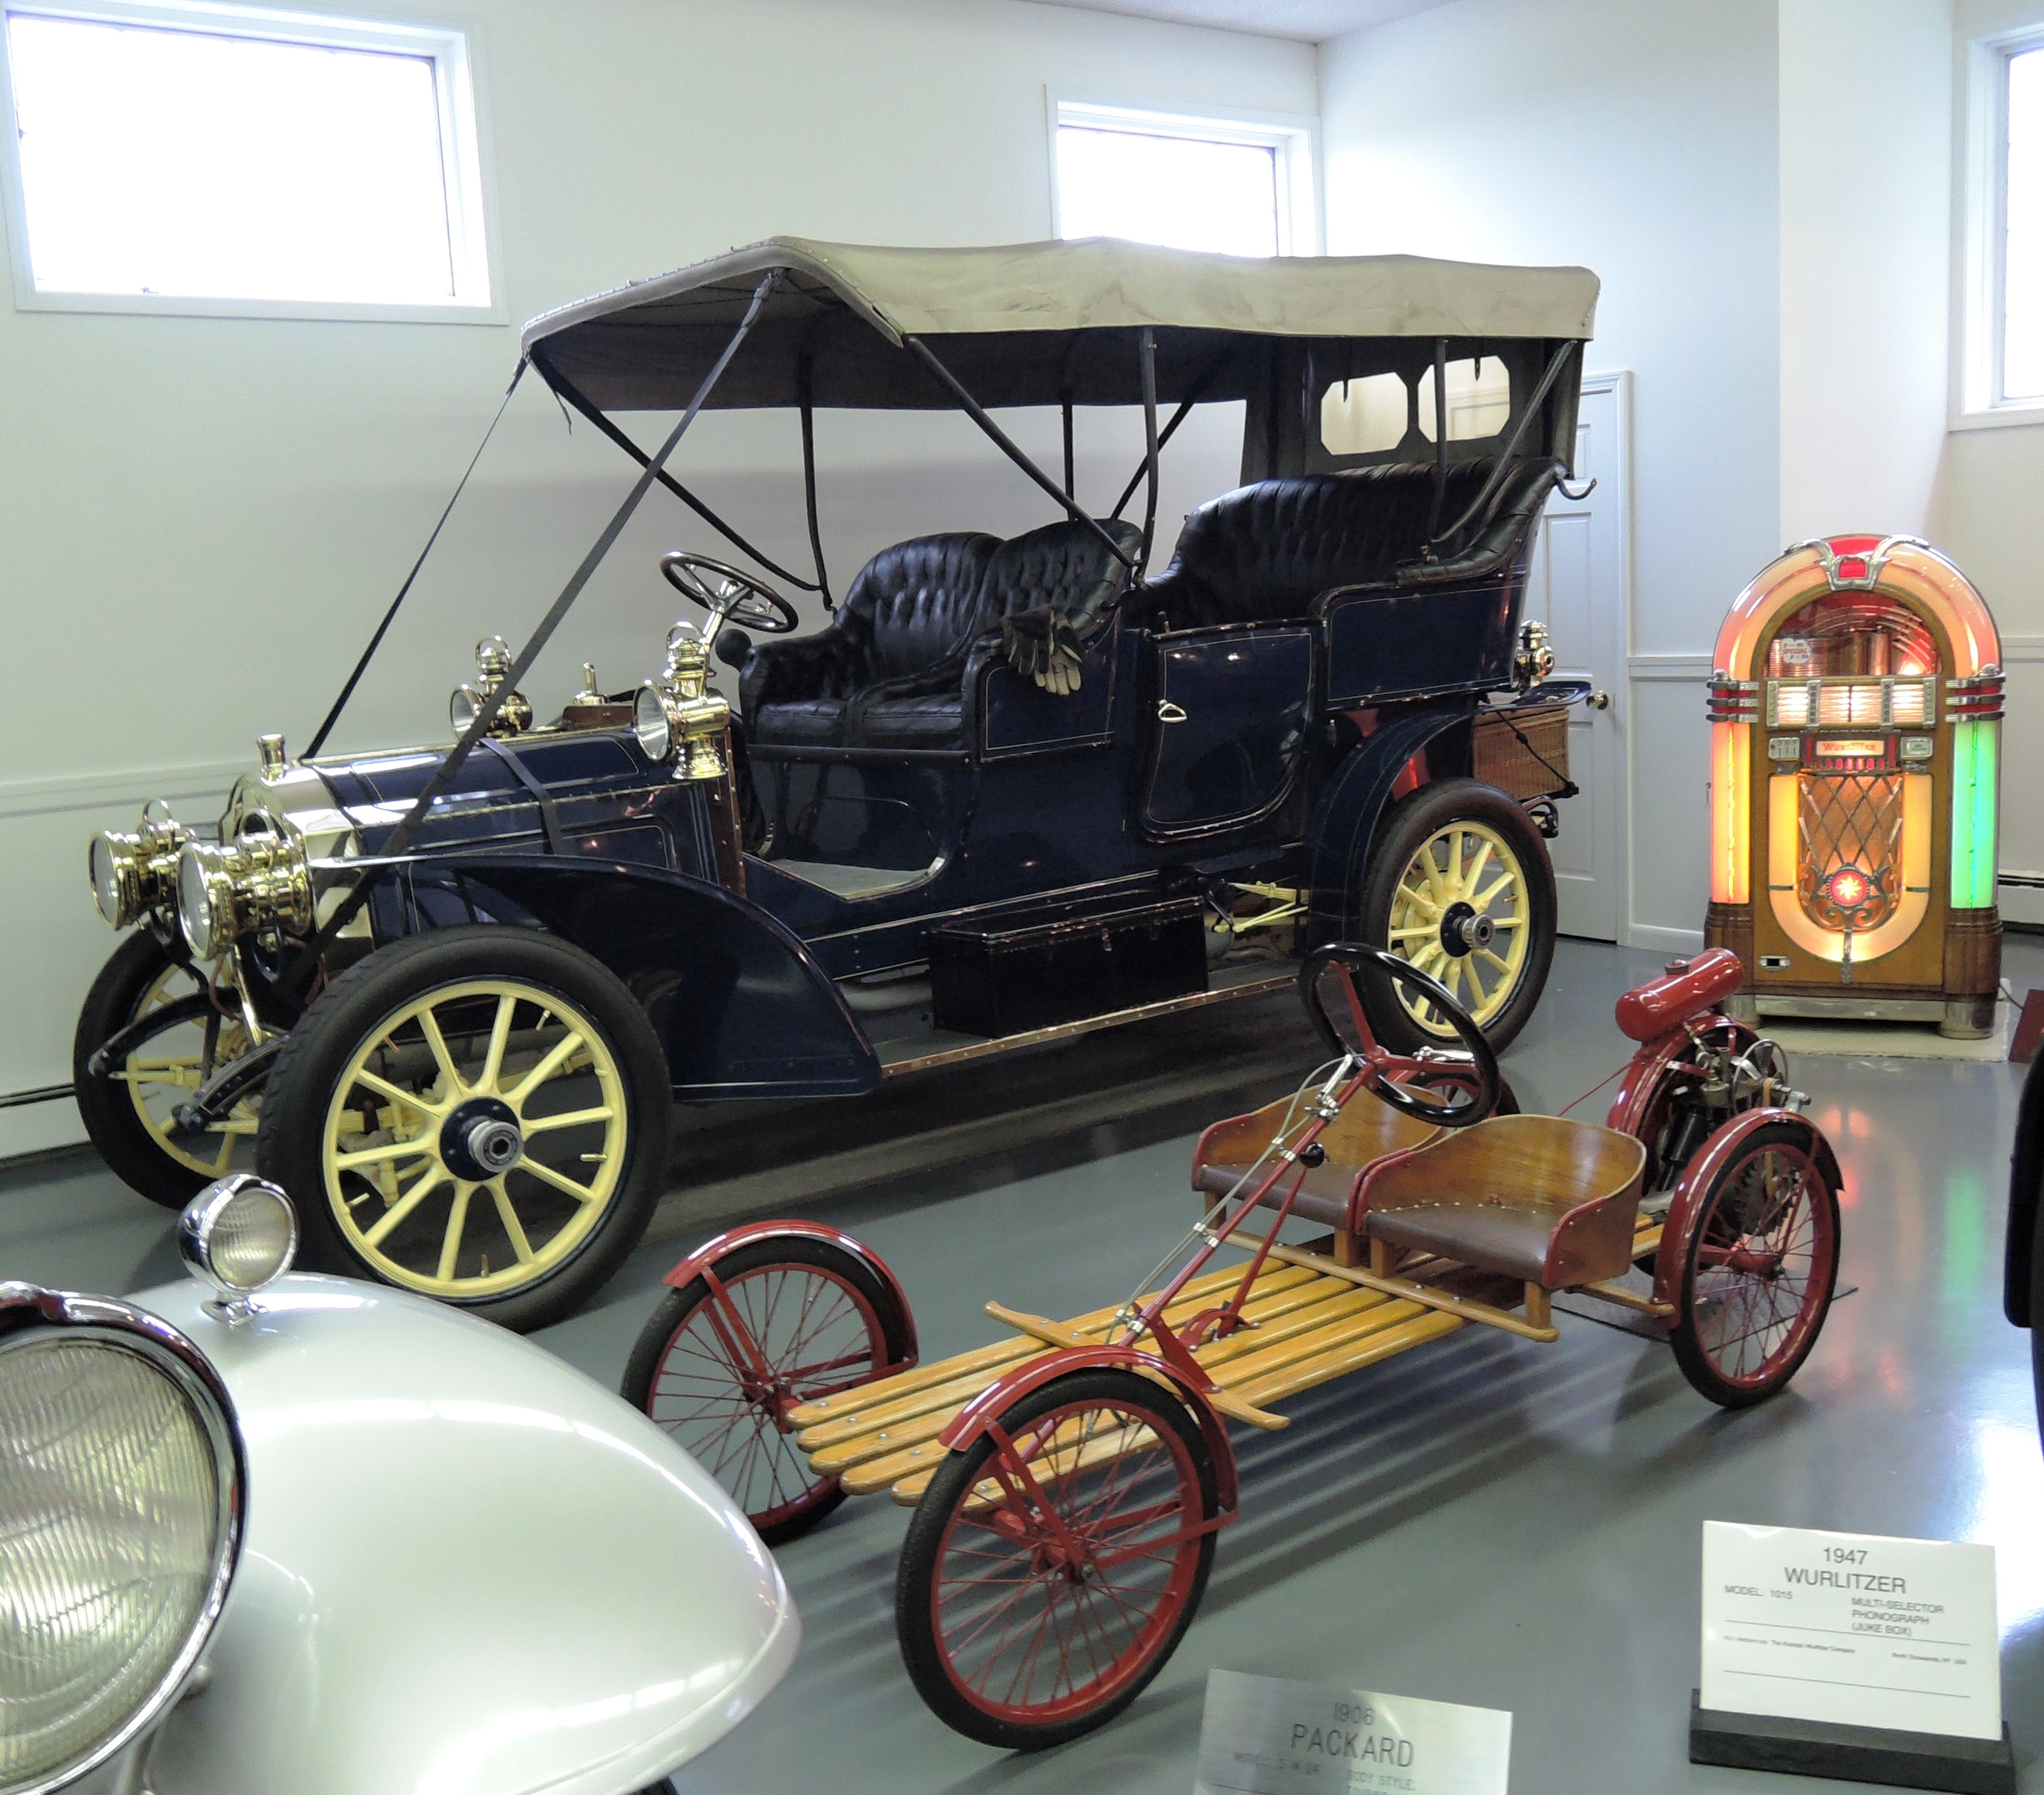 1906 Packard Touring, with a 1947 Wurlitzer Multi-selector Phonograph Jukebox to the right and a 1924 Auto Red Bug Buckboard in front - bahre car collection